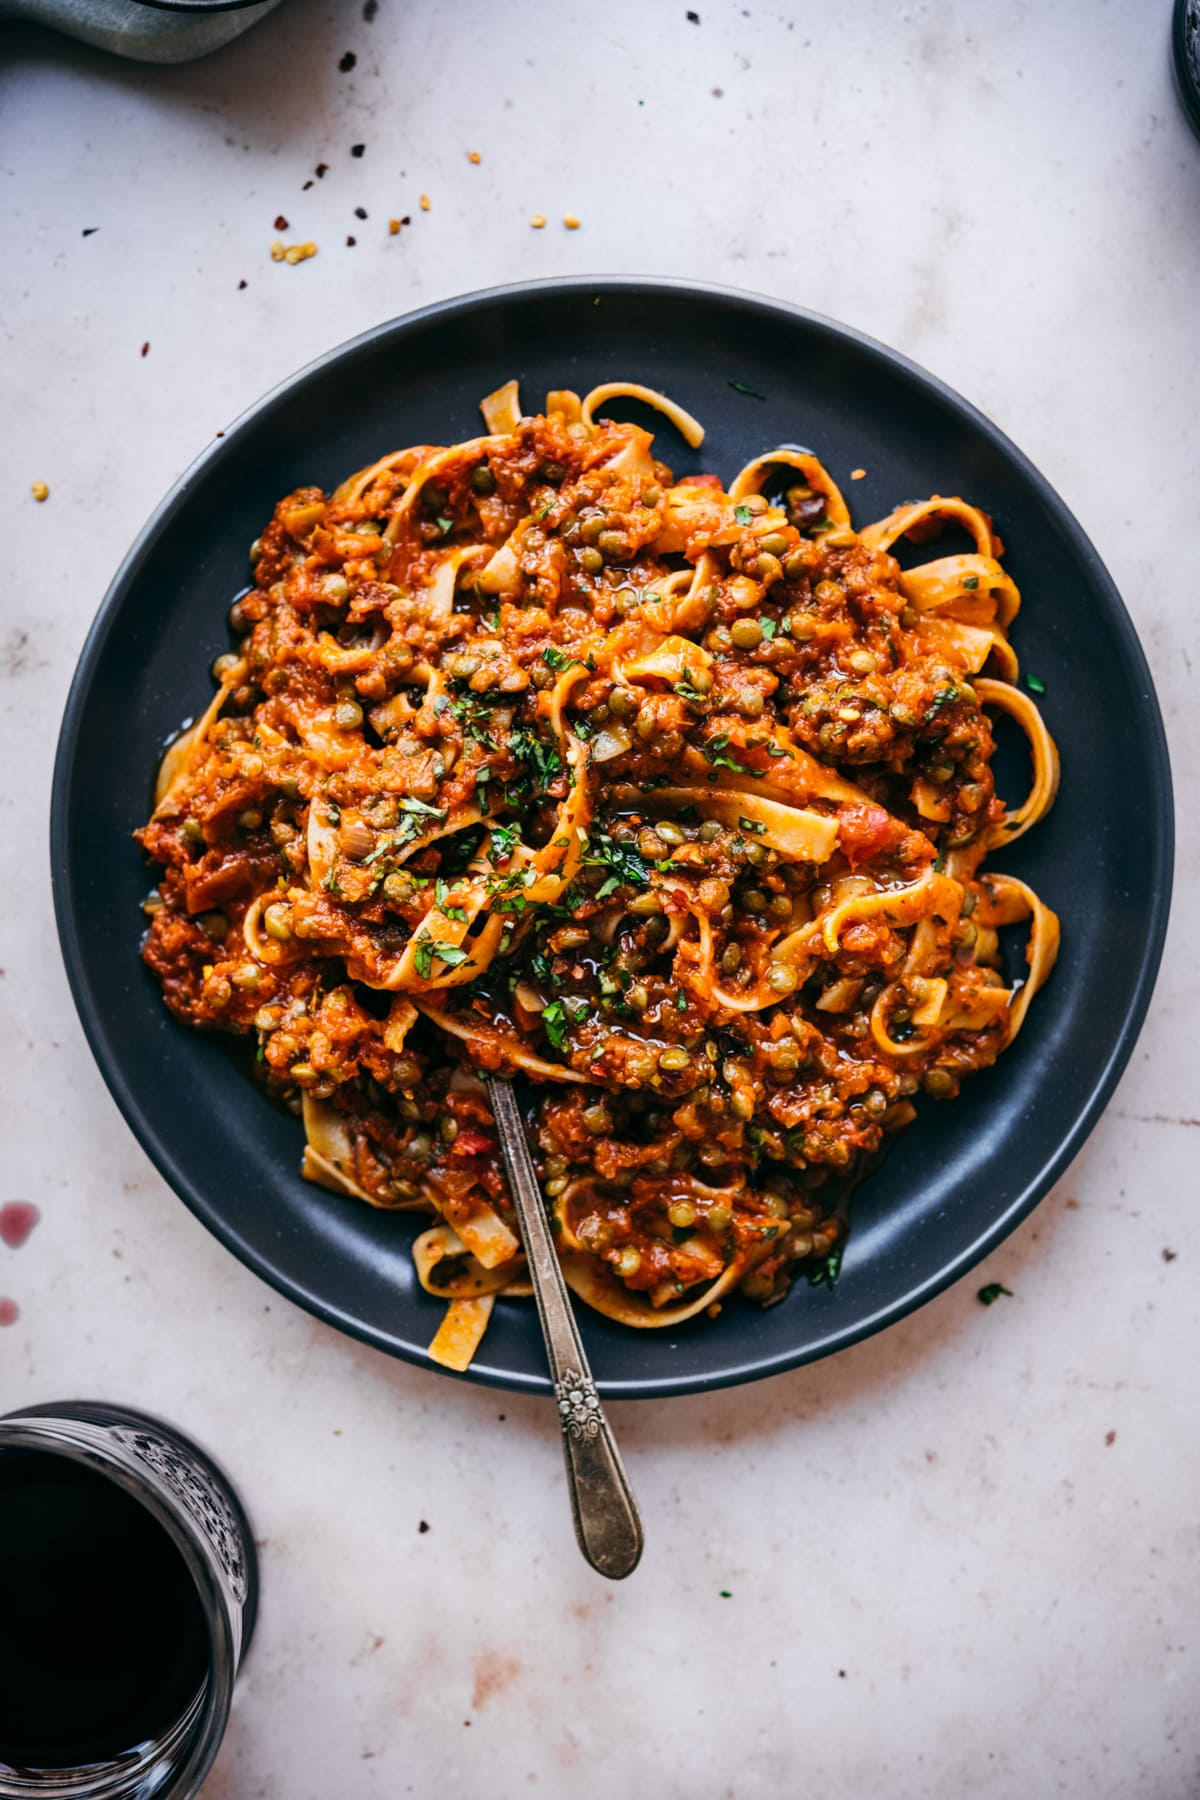 overhead view of vegan lentil bolognese sauce over pasta on black plate with fork.